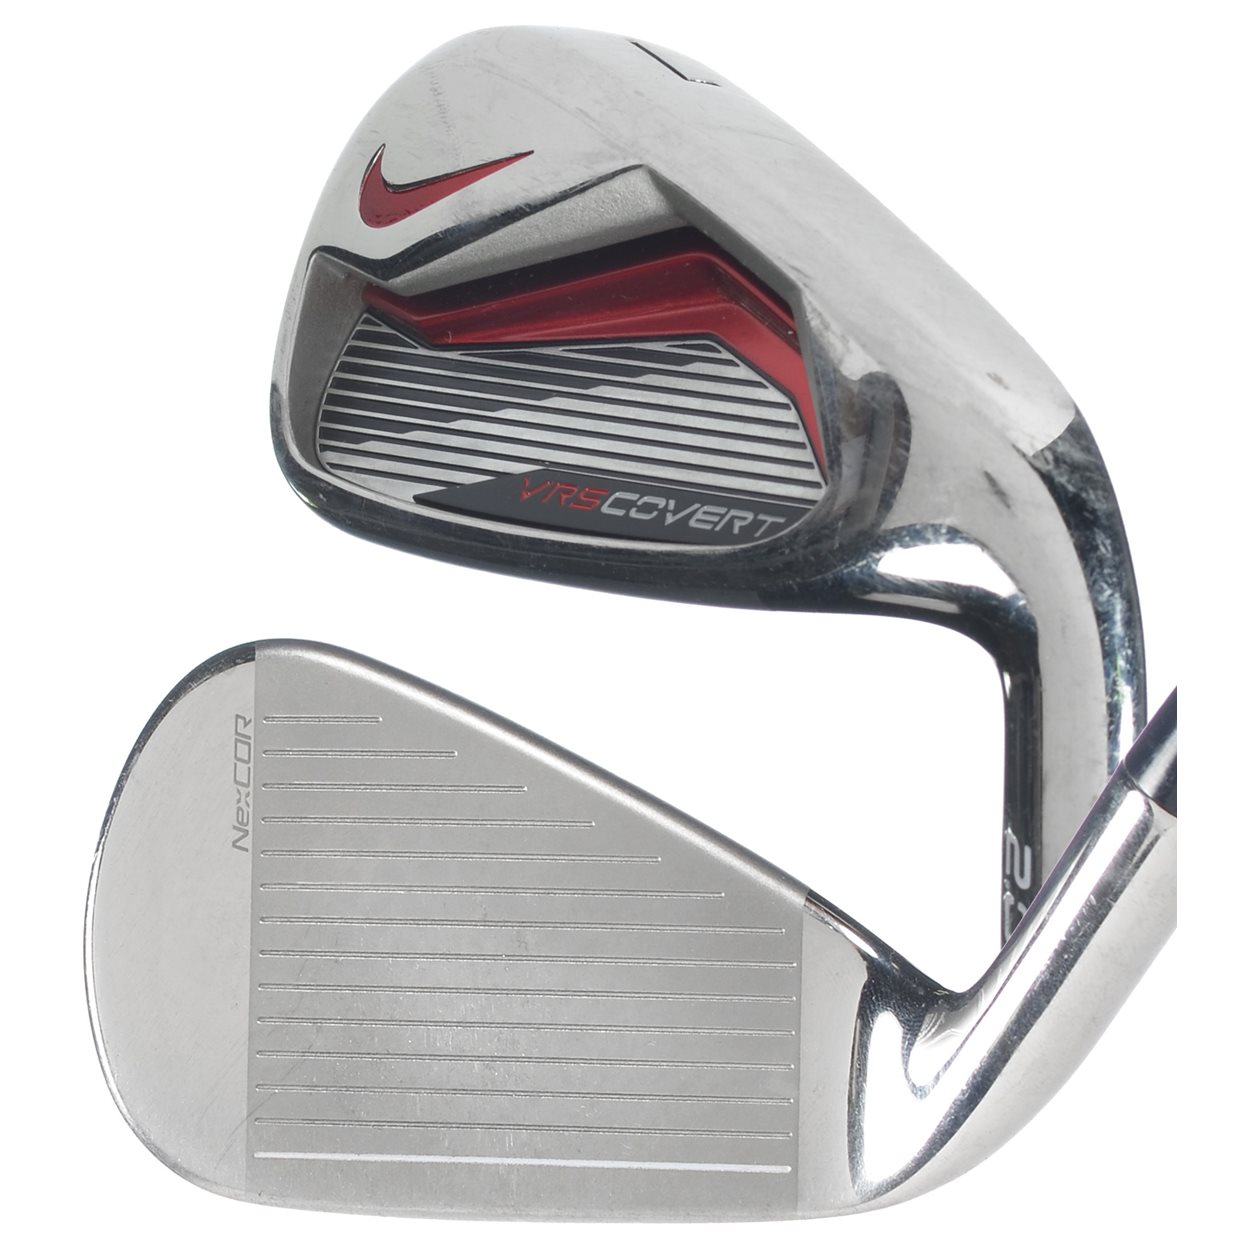 e444dabe2d58 Nike VR-S Covert 2.0 Iron Set 4-PW Used Golf Club at GlobalGolf.ca